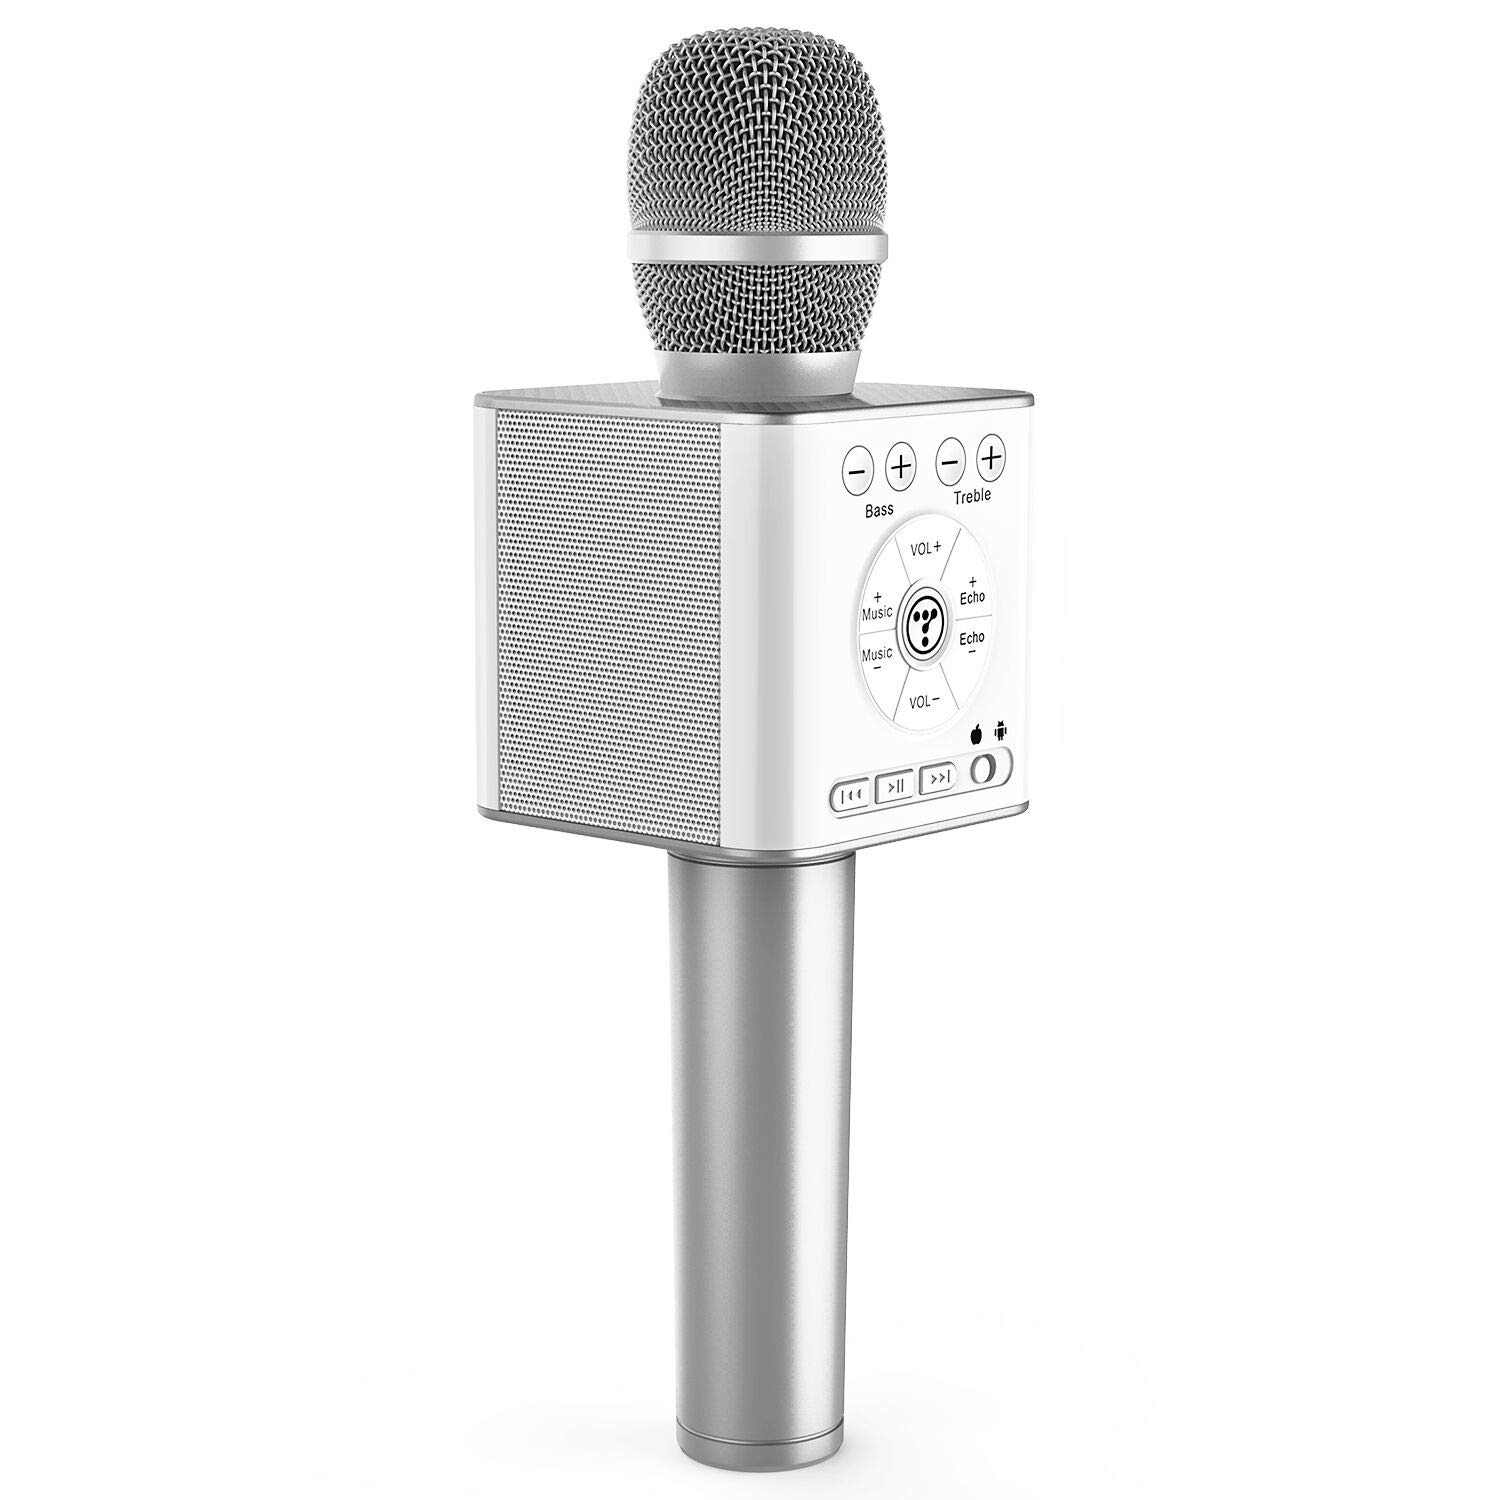 Tosing 04 Wireless Bluetooth Karaoke Microphone,Louder Volume 10W Power, More Bass, 3-in-1 Portable Handheld Double Speaker Mic Machine for iPhone/Android/iPad/PC (Silver)